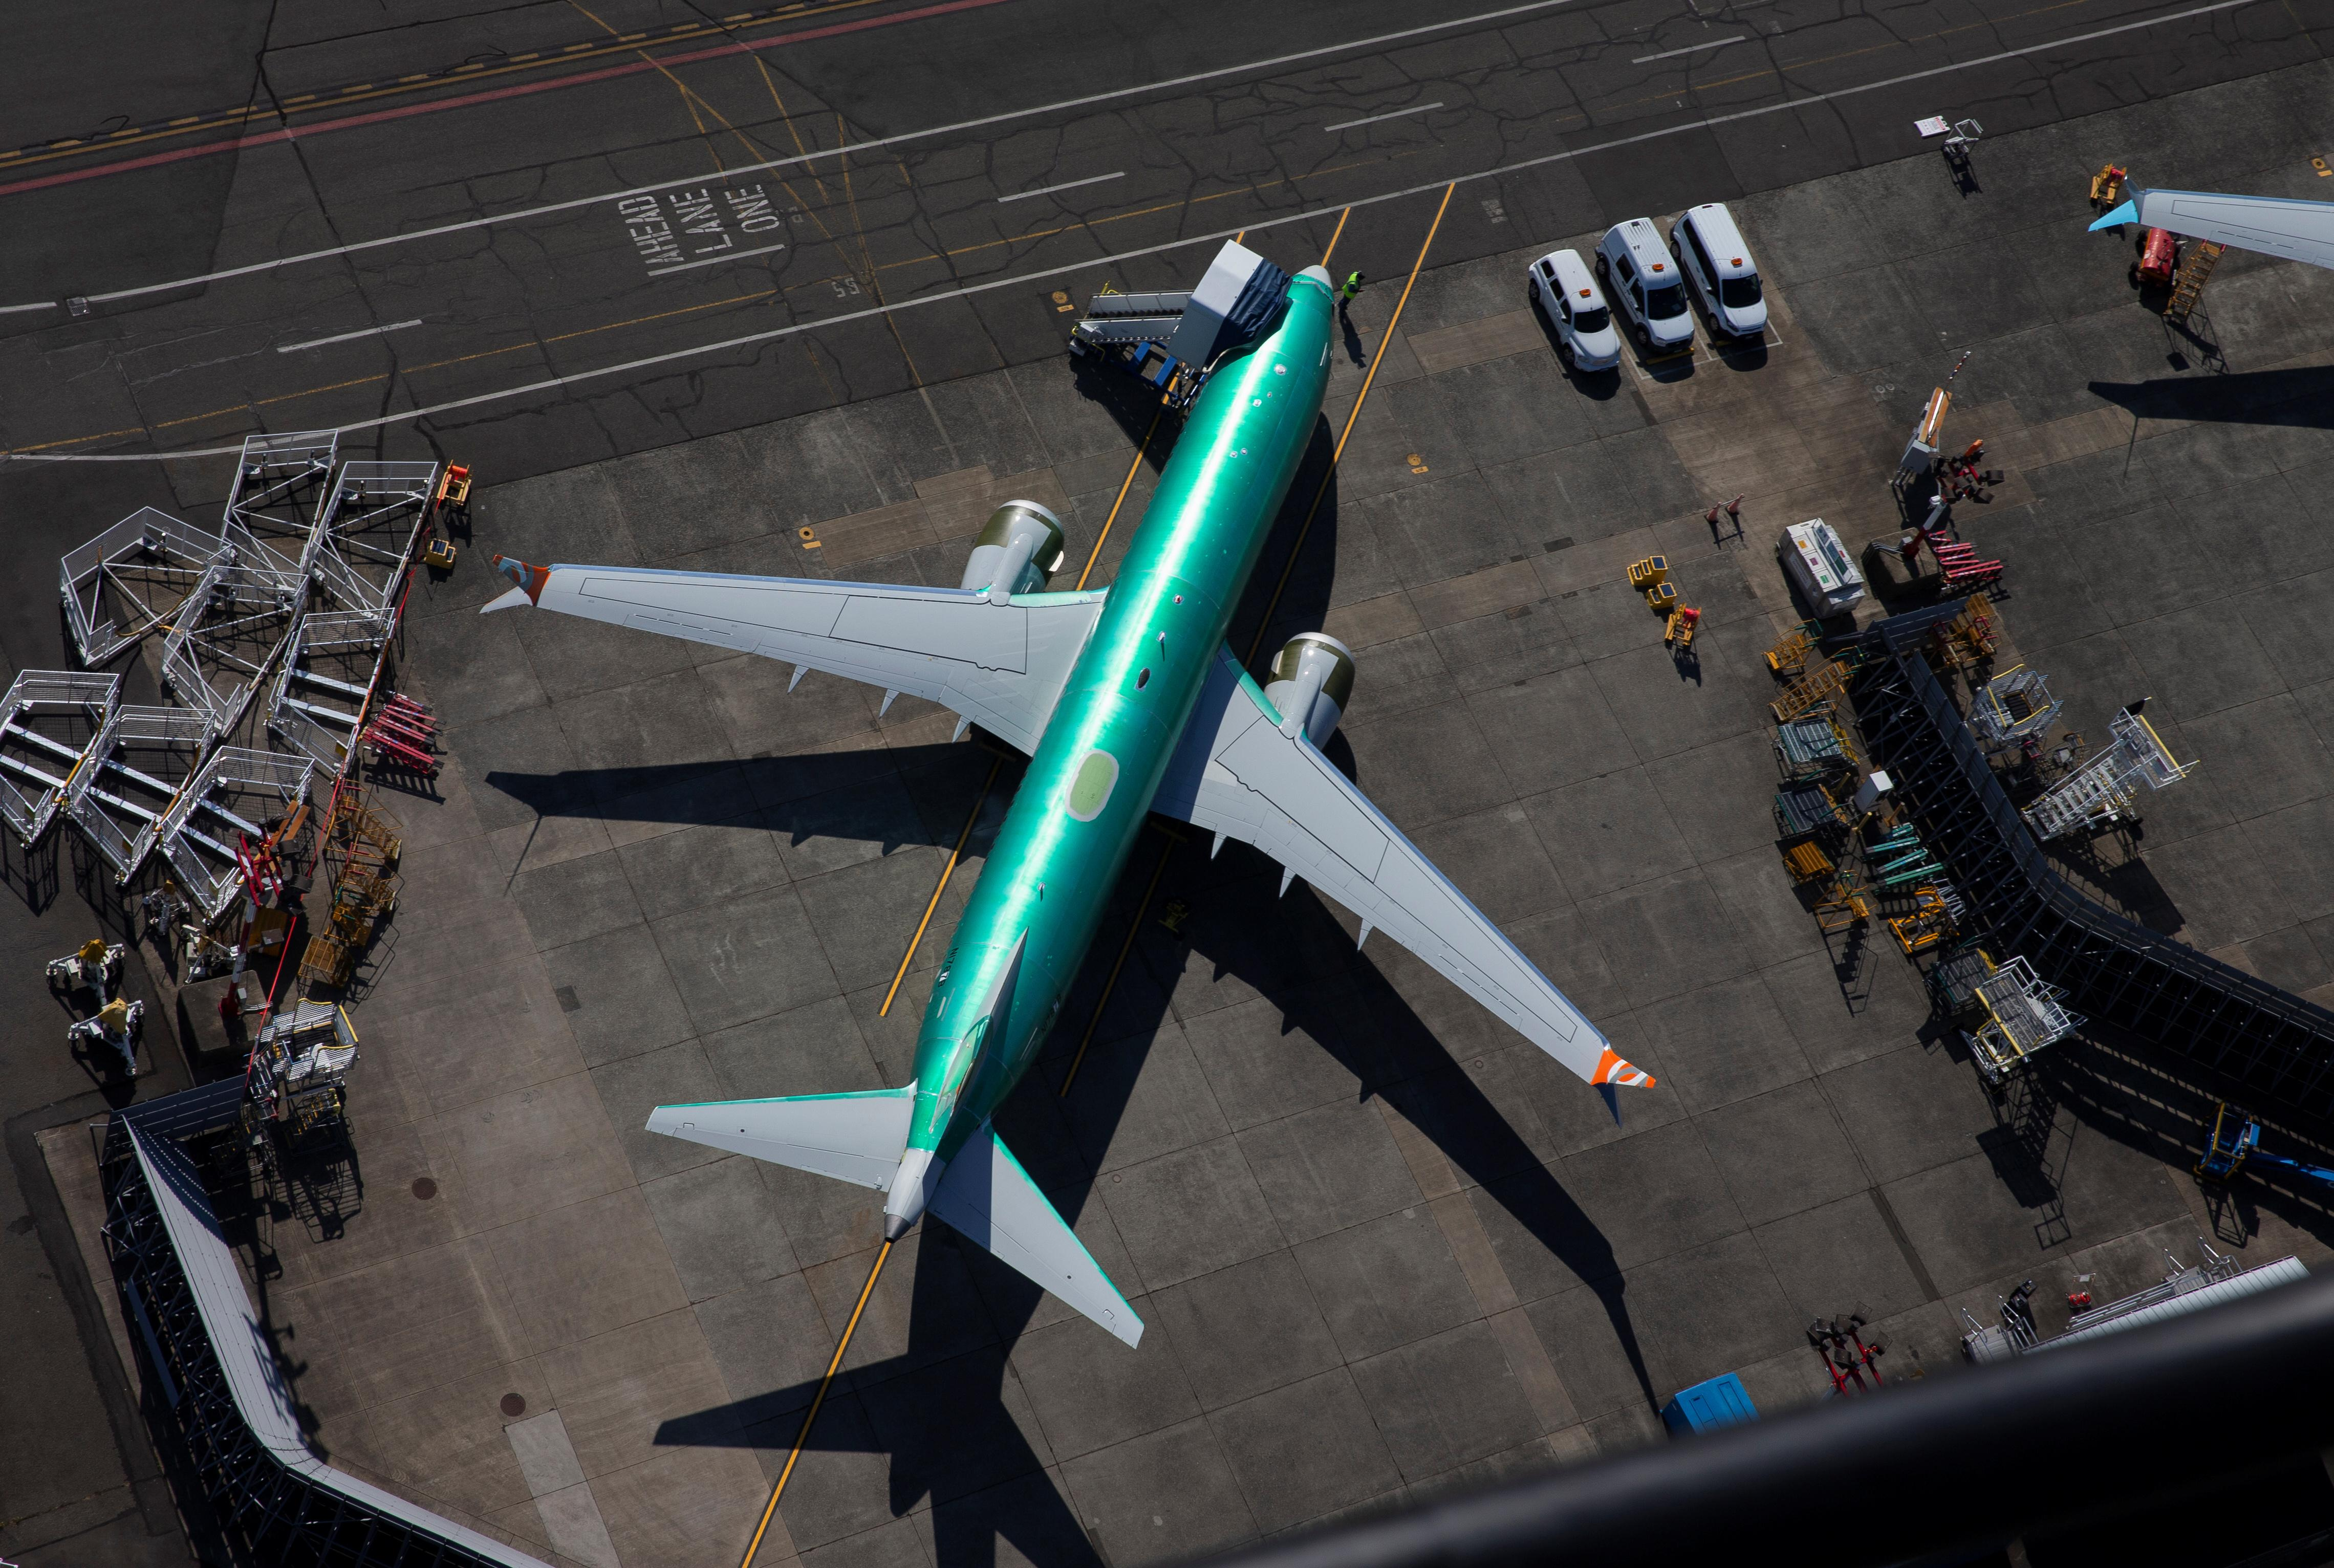 Aviation watchdog may ask Boeing to set up 737 MAX simulators in India